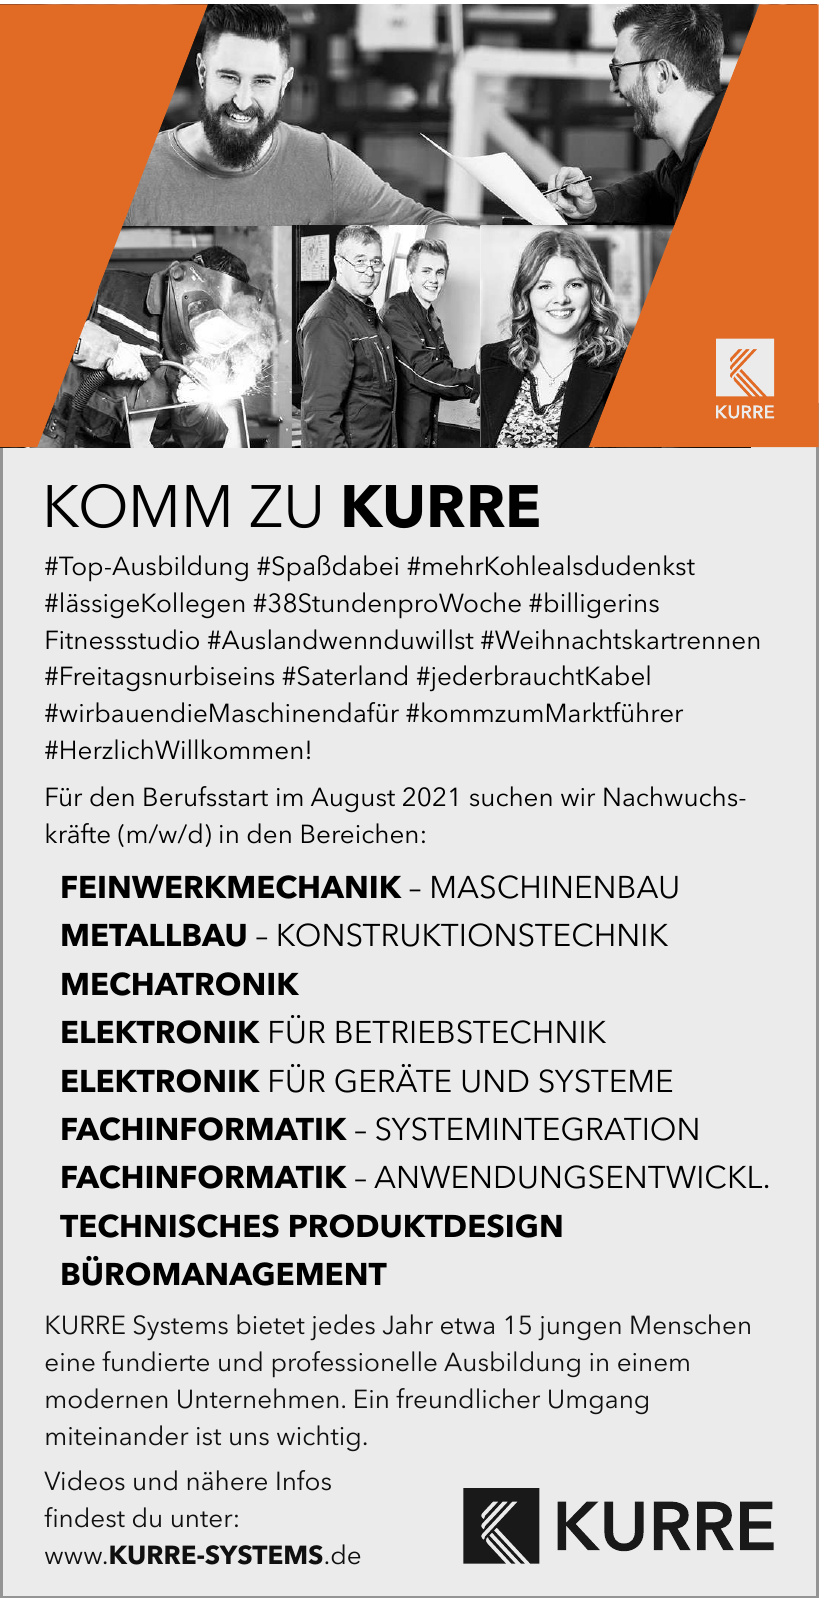 KURRE Systems